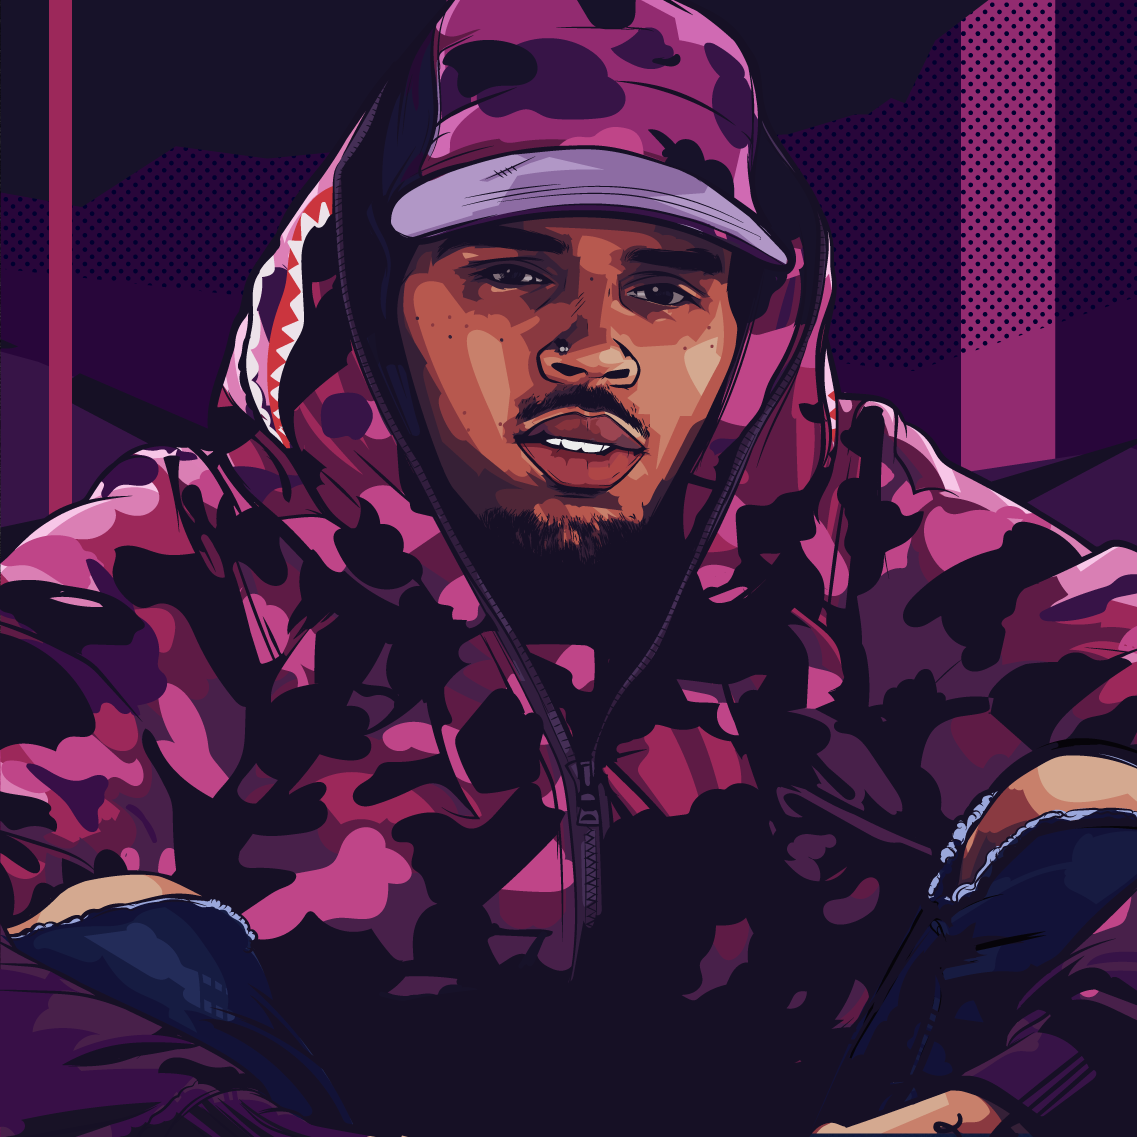 Chris Brown Art by Samona Lena